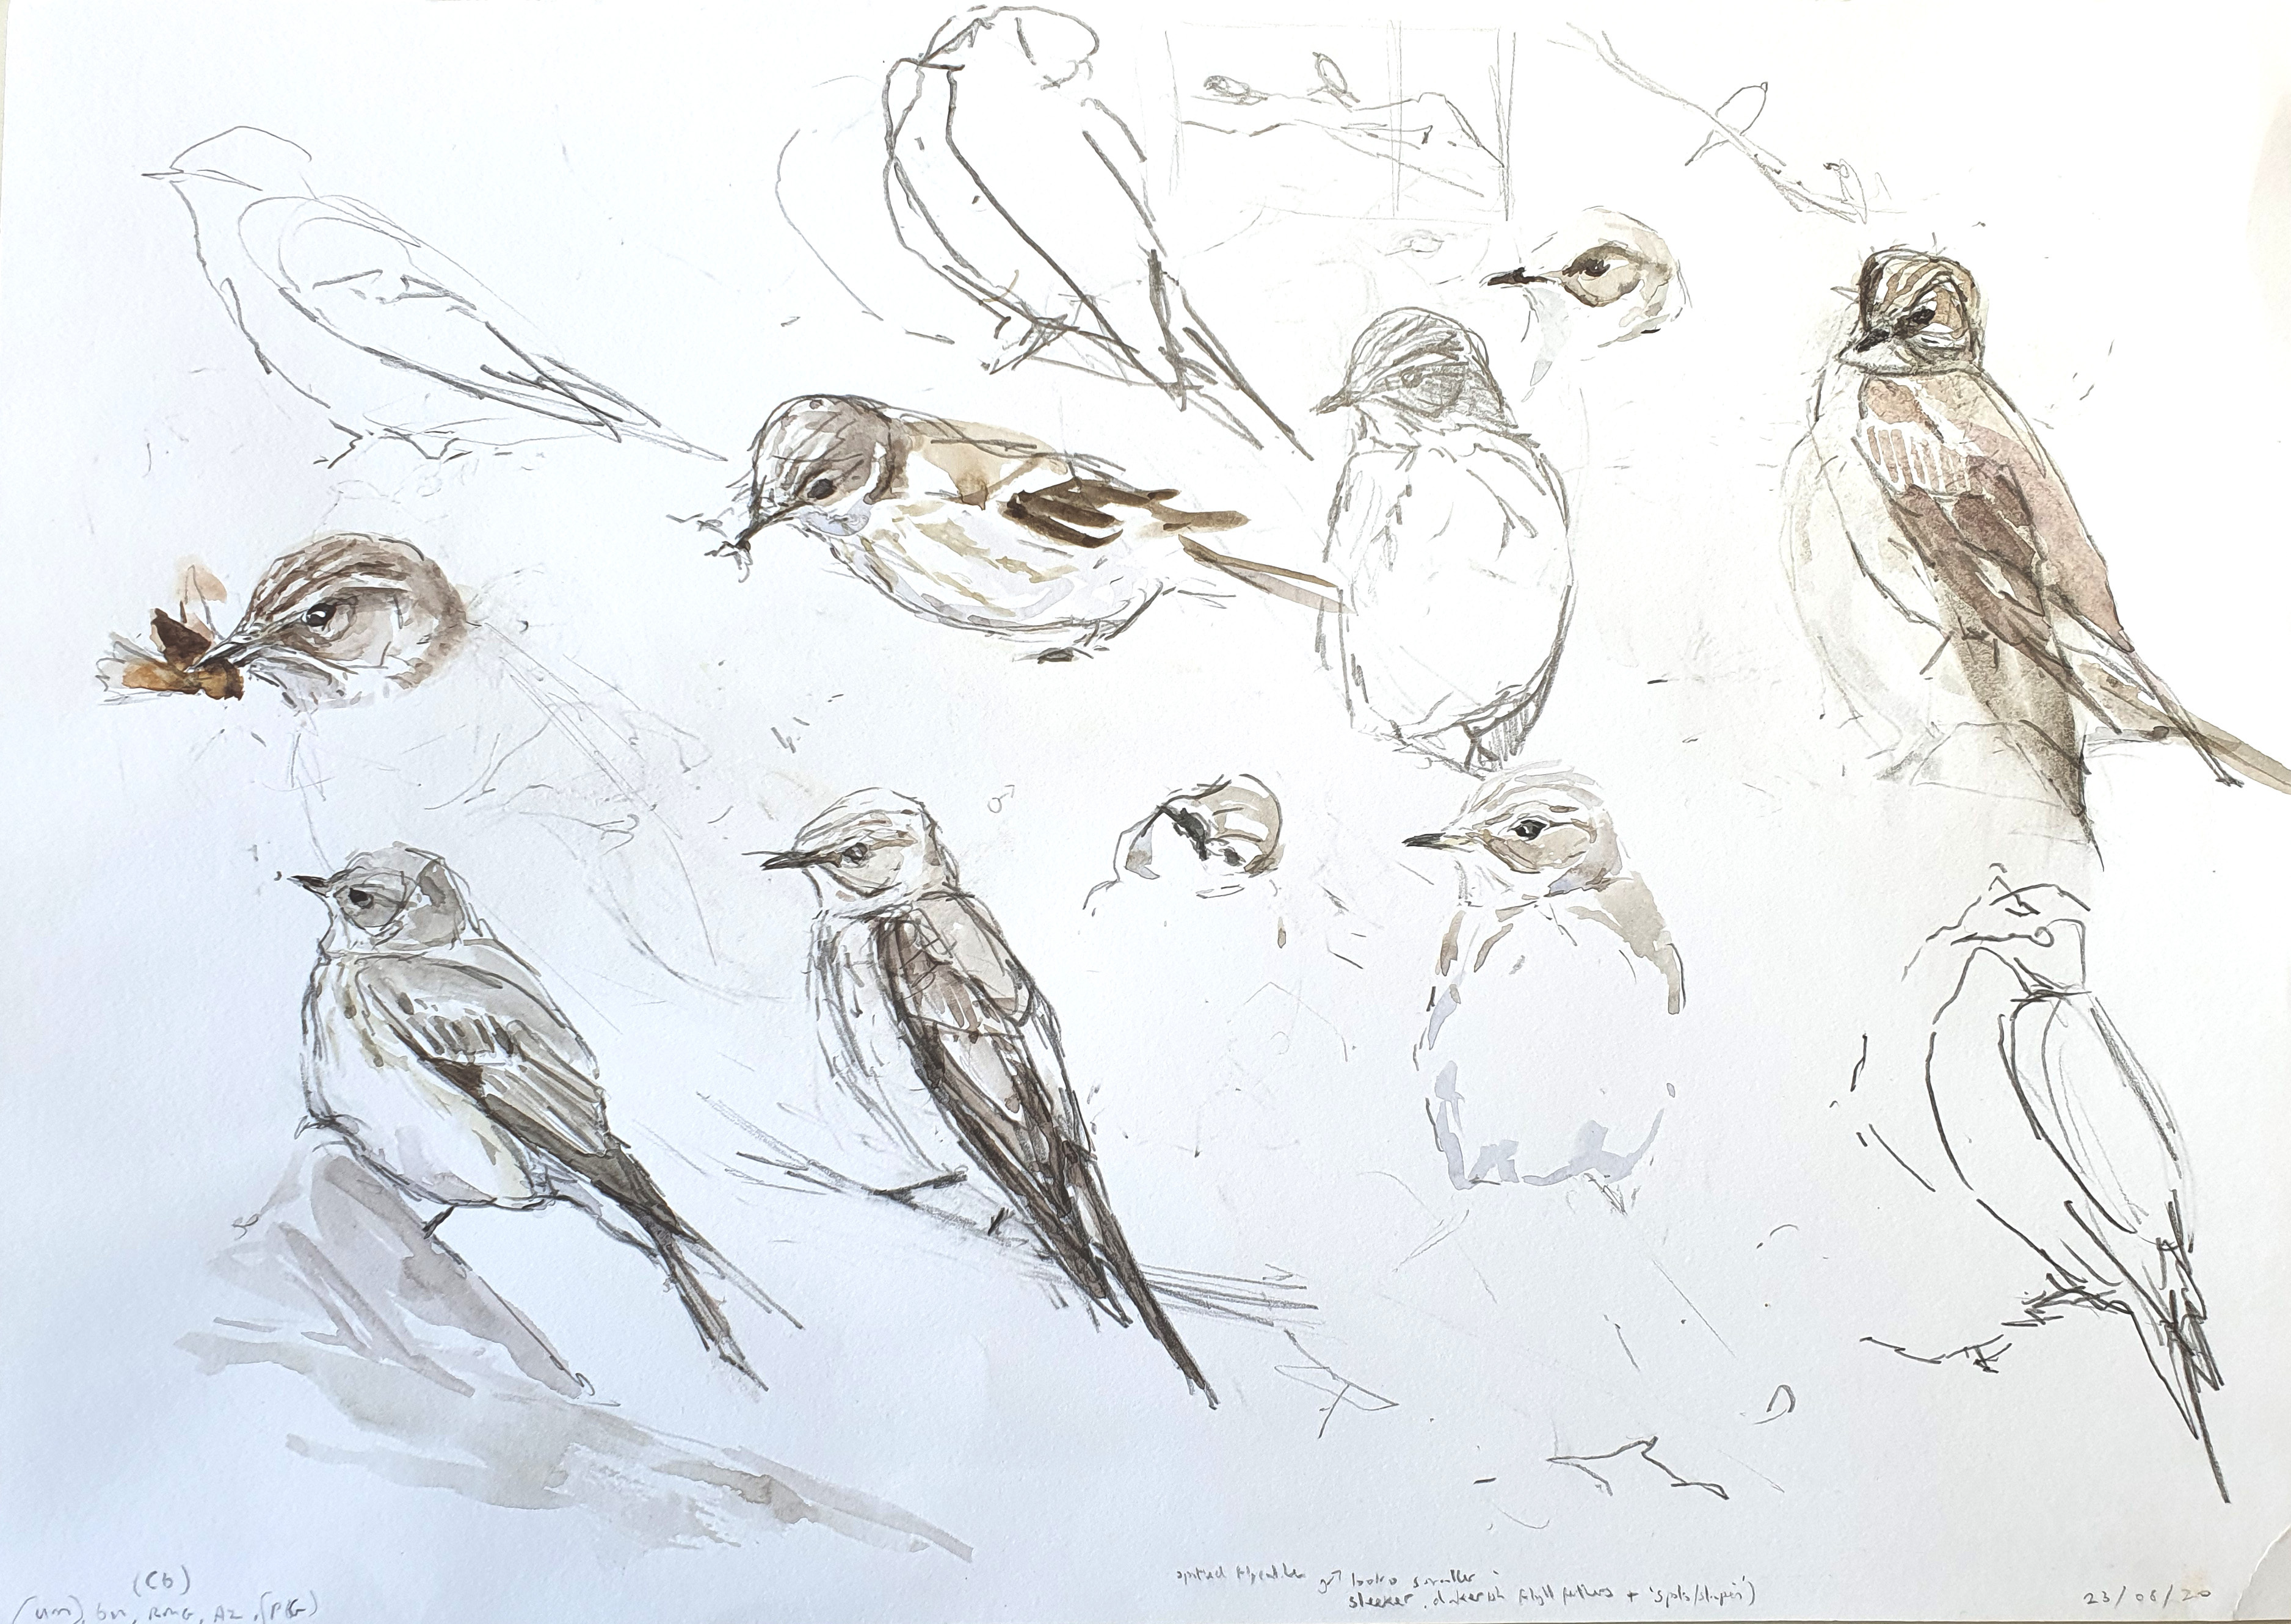 <p>Spooted Flycatcher foraging study by Chris Wallbank</p>